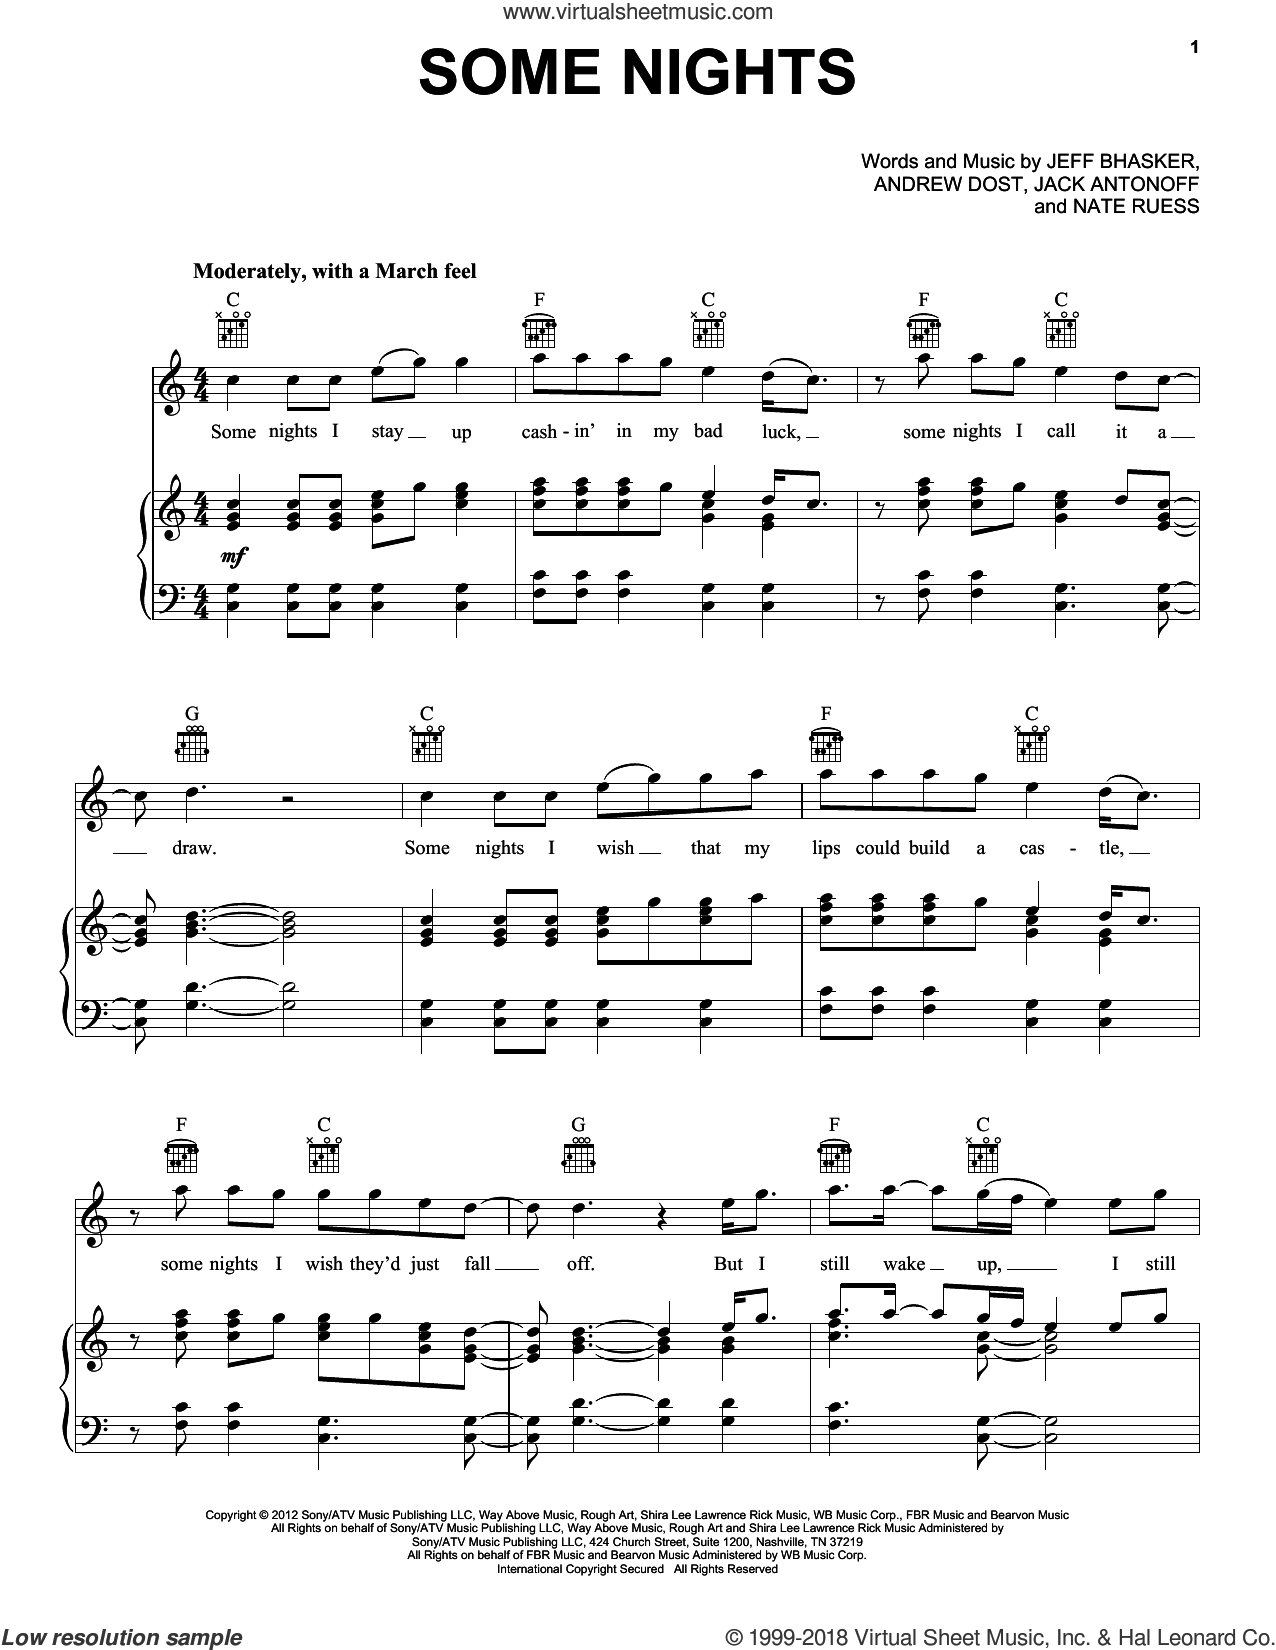 Some Nights sheet music for voice, piano or guitar by Fun, Andrew Dost, Jack Antonoff, Jeff Bhasker and Nathaniel Ruess, intermediate skill level